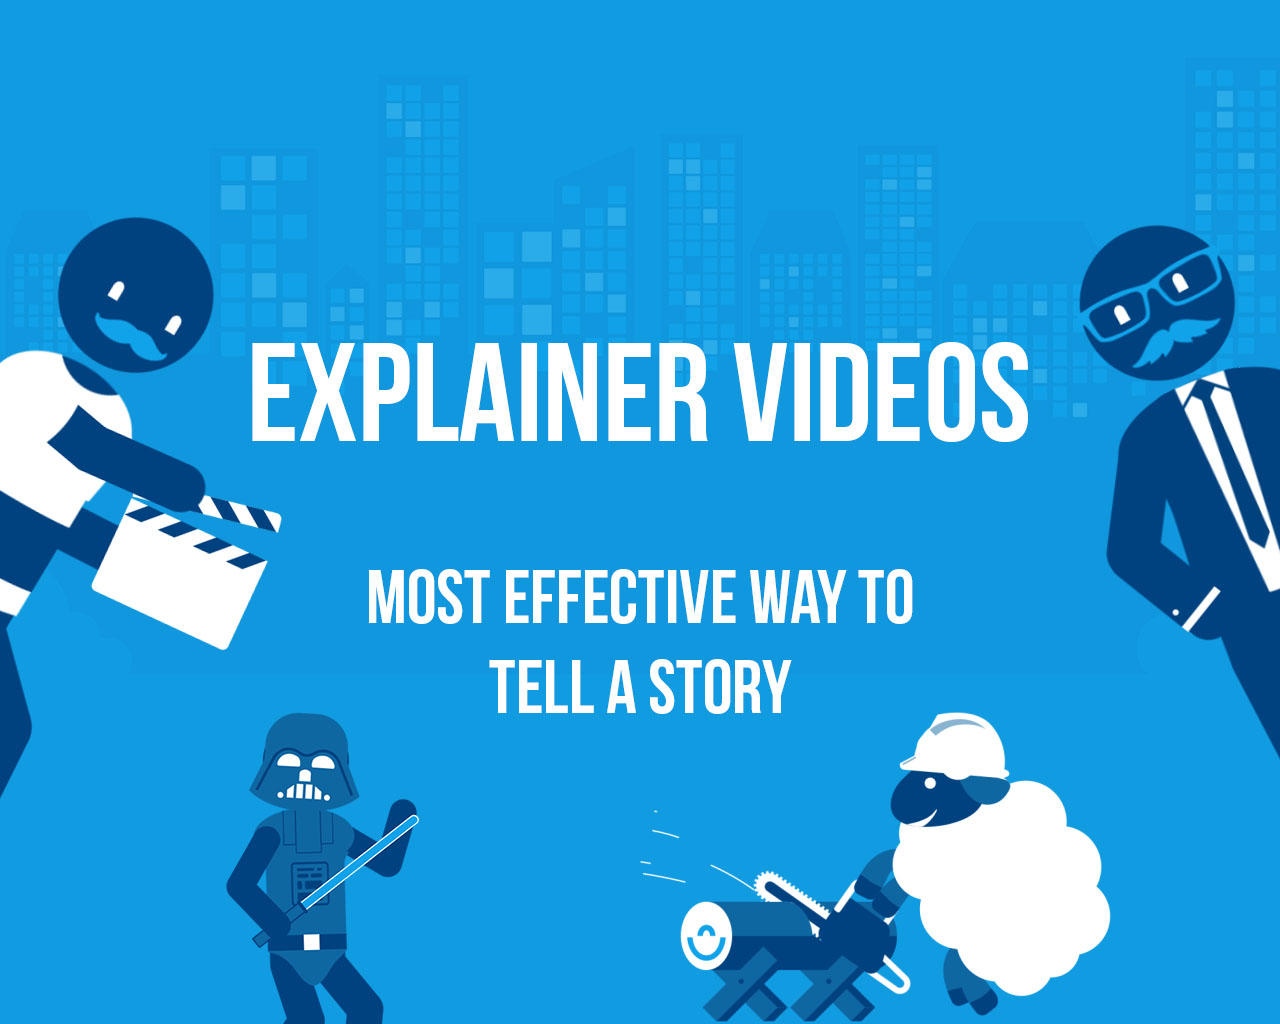 Animated Explainer Video (30 Seconds) + Voice Over By. Online Adjunct Faculty Positions In Education. Best Water To Use For Baby Formula. What Is The Difference Between Bankruptcy And Insolvency. Ny Times Learning Network Best Dentist Denver. Logmein Remote Control Not Working. Sunnet Online Banking Login World Web Design. Skin Care Products For Acne Prone Skin. Plumbers In Sandy Utah Heart Catheter Surgery